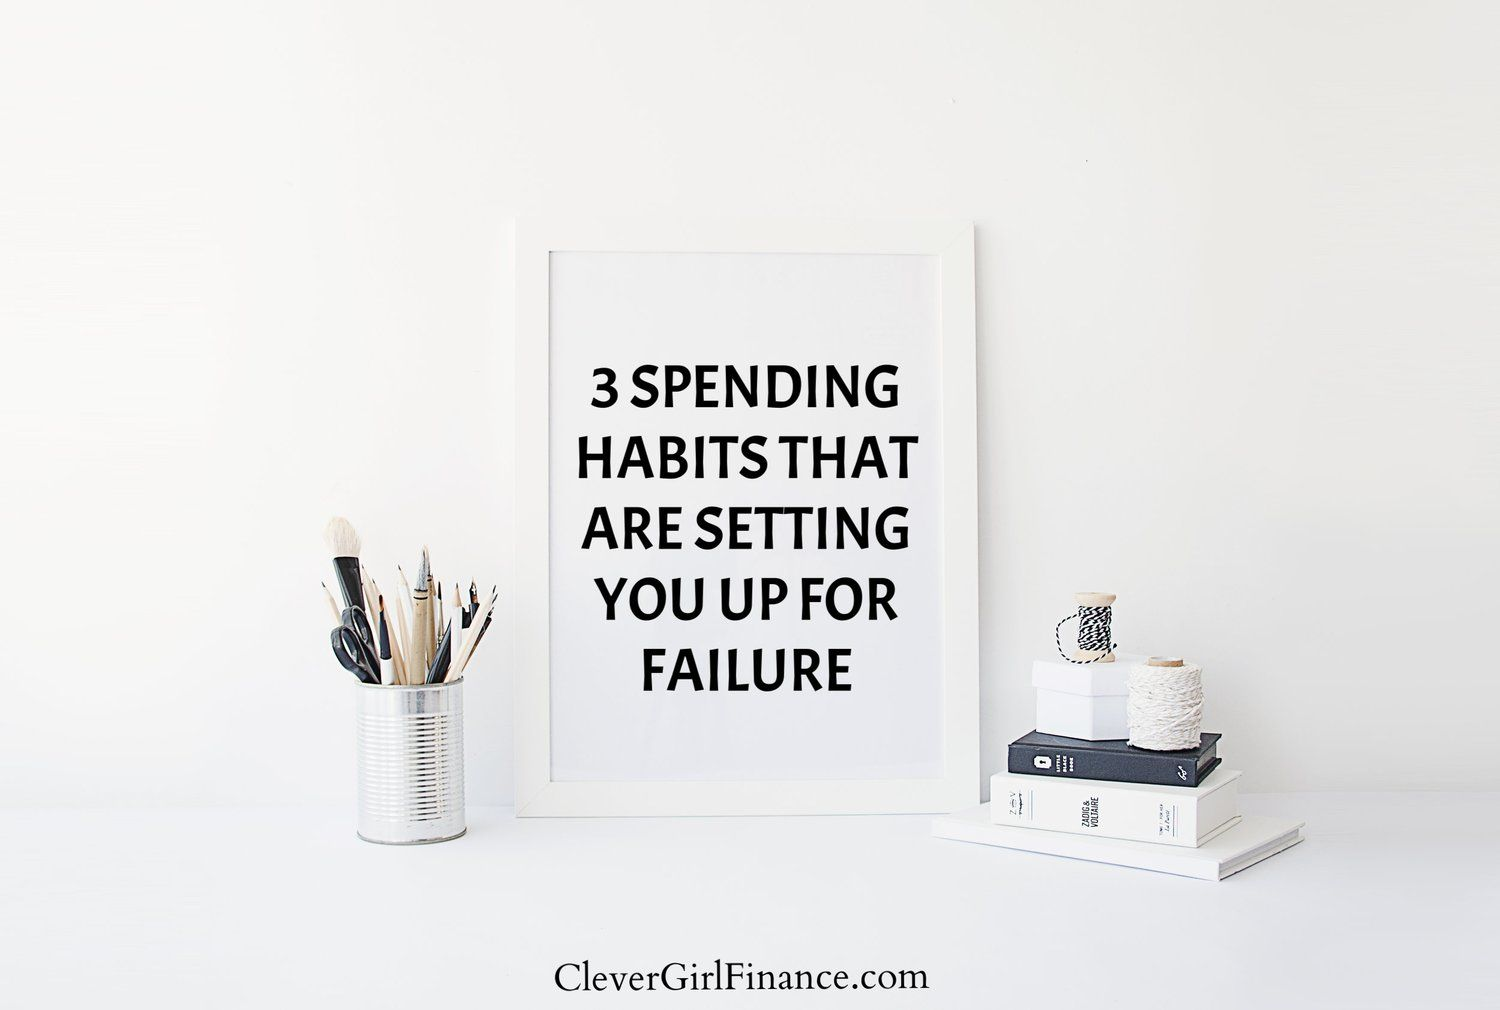 3 spending habits setting you up for failure investing